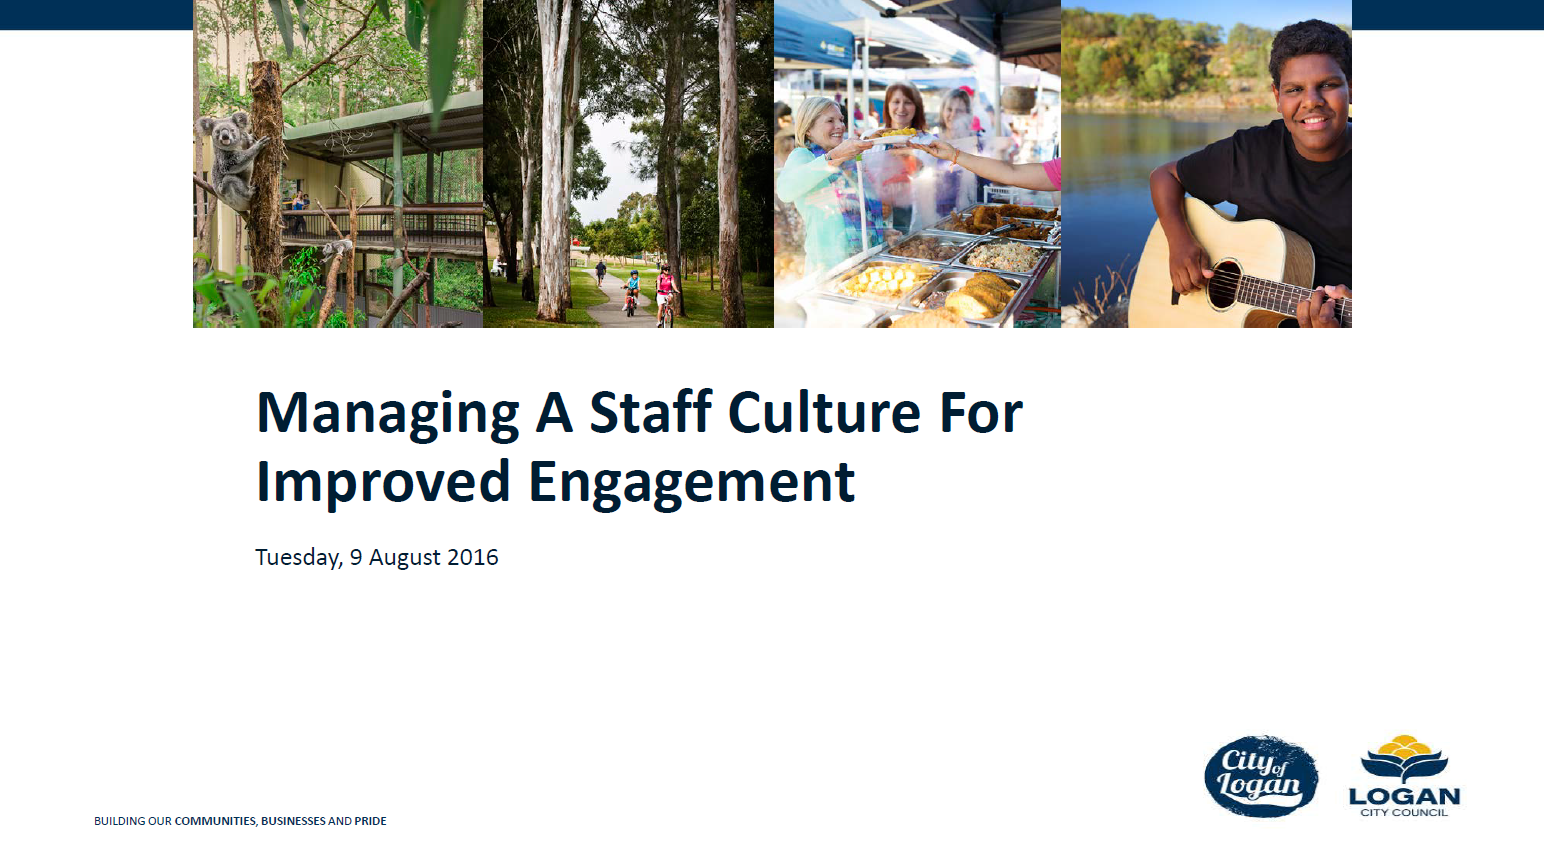 Managing a Staff Culture for Improved Engagement